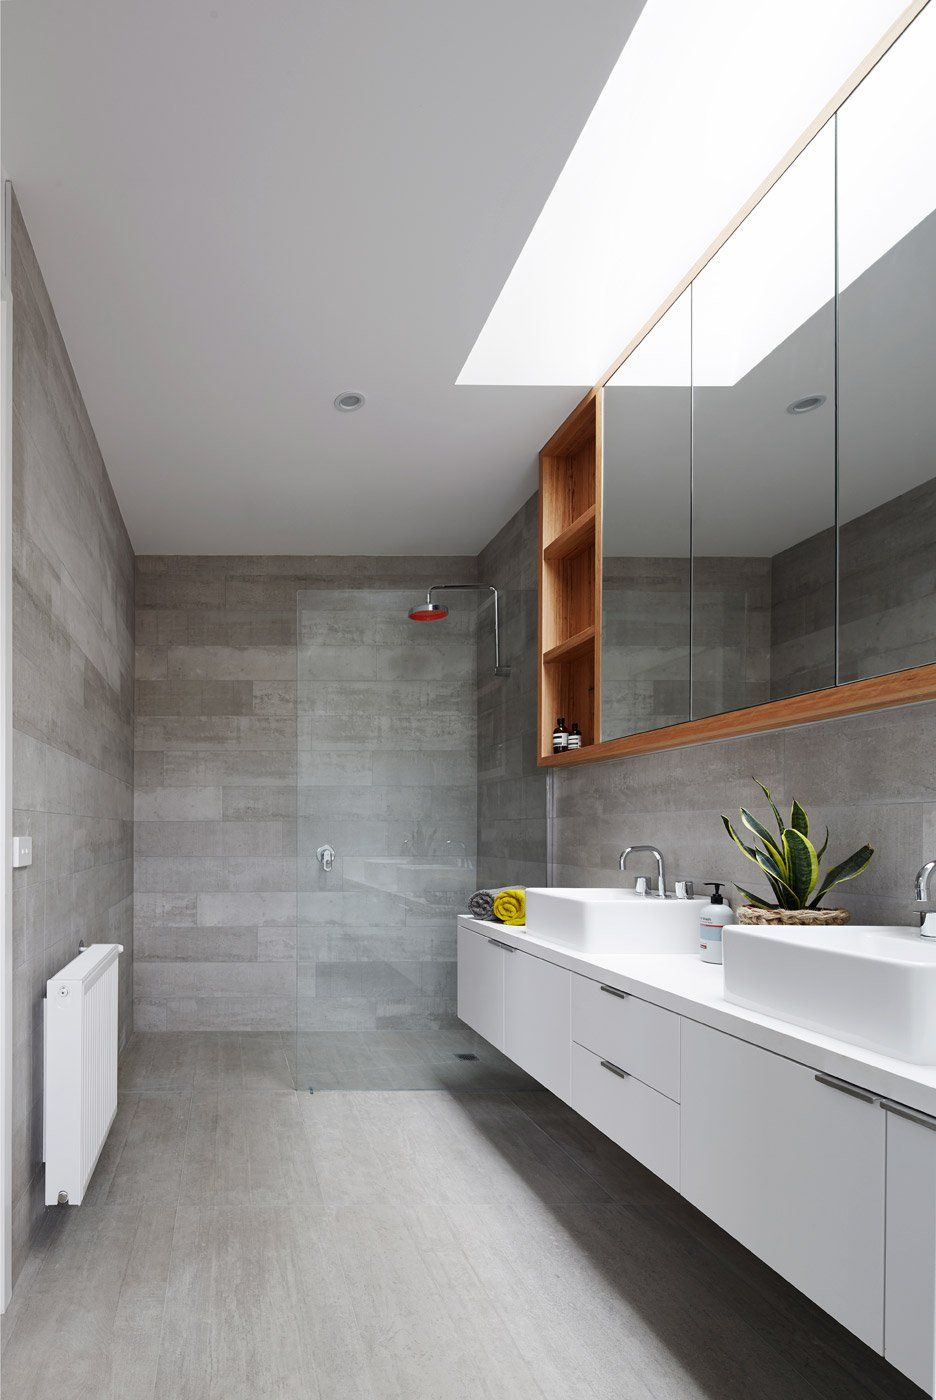 700 Haus by Glow Design Group | modern | Pinterest | Haus, House and ...